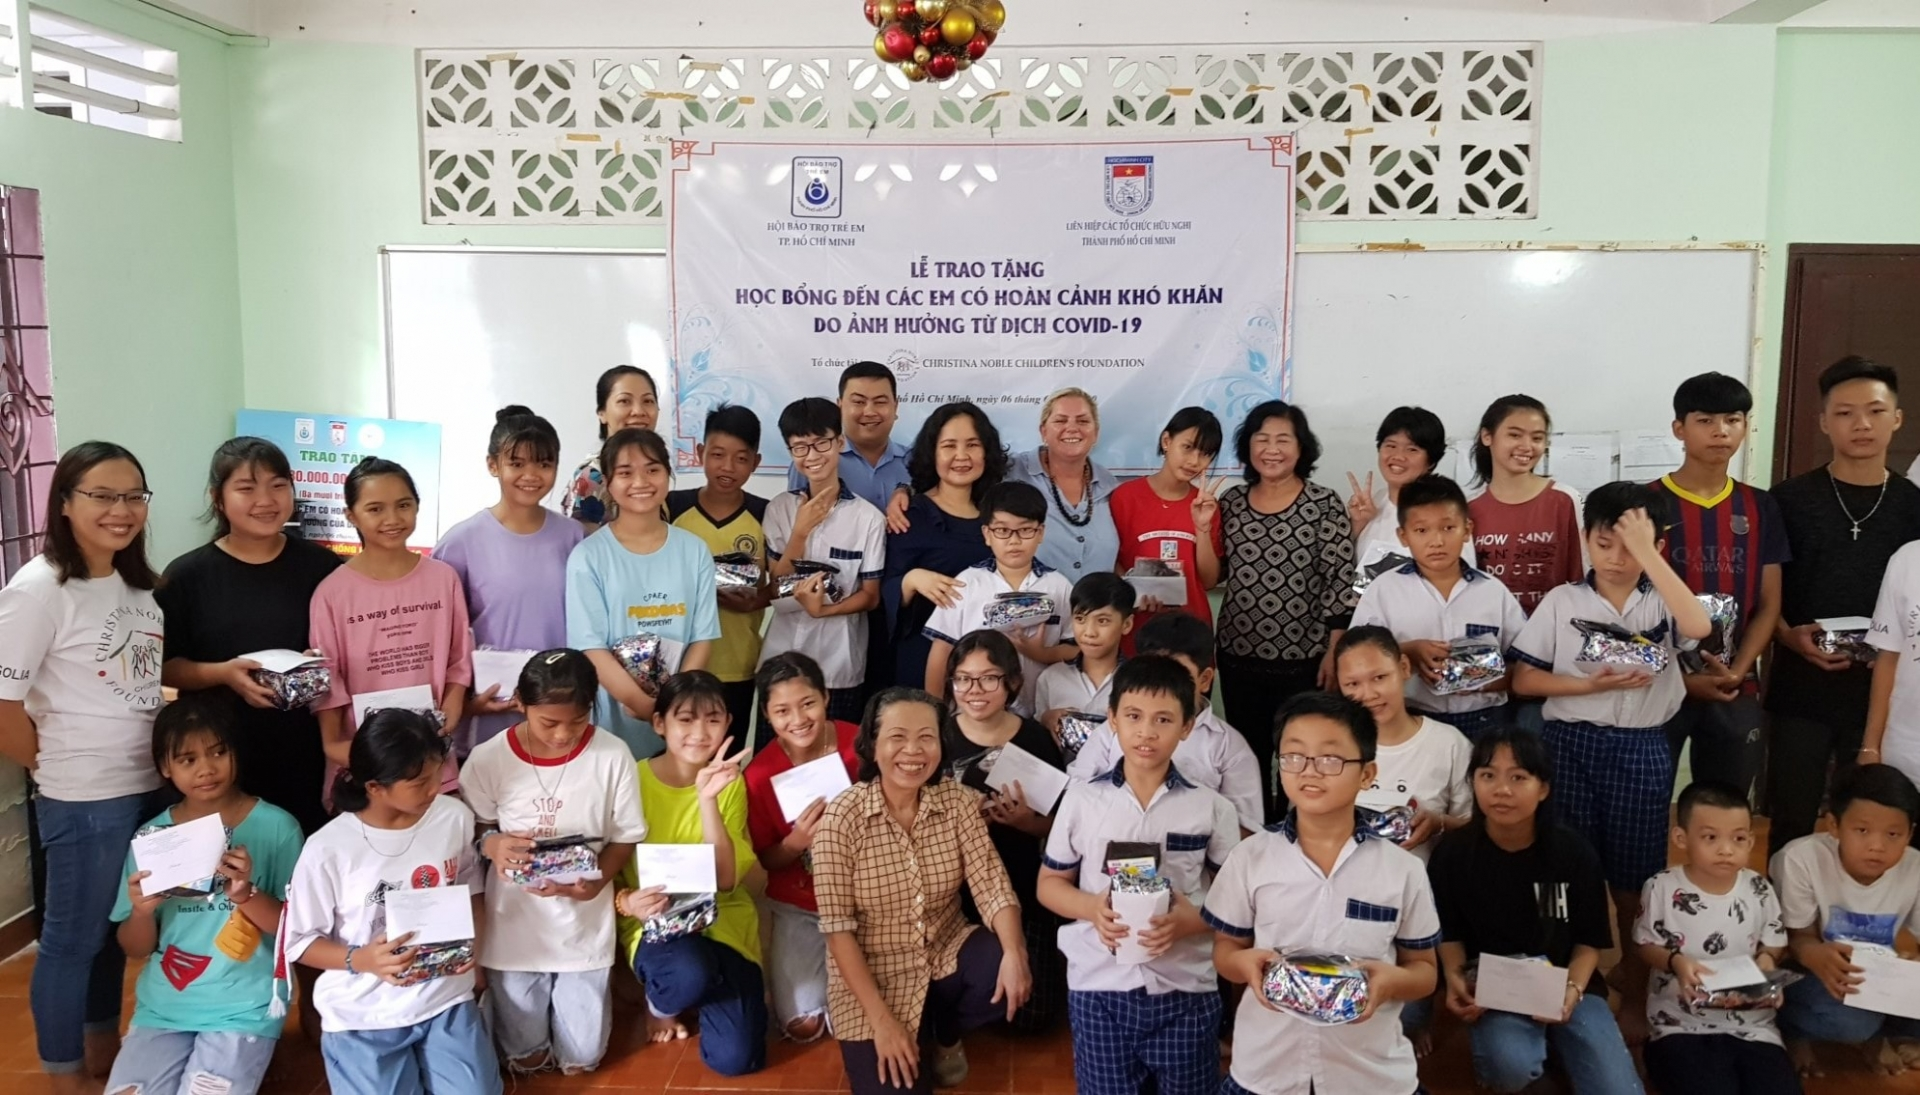 cncf donates usd 1285 to support needy children in vietnam amid covid 19